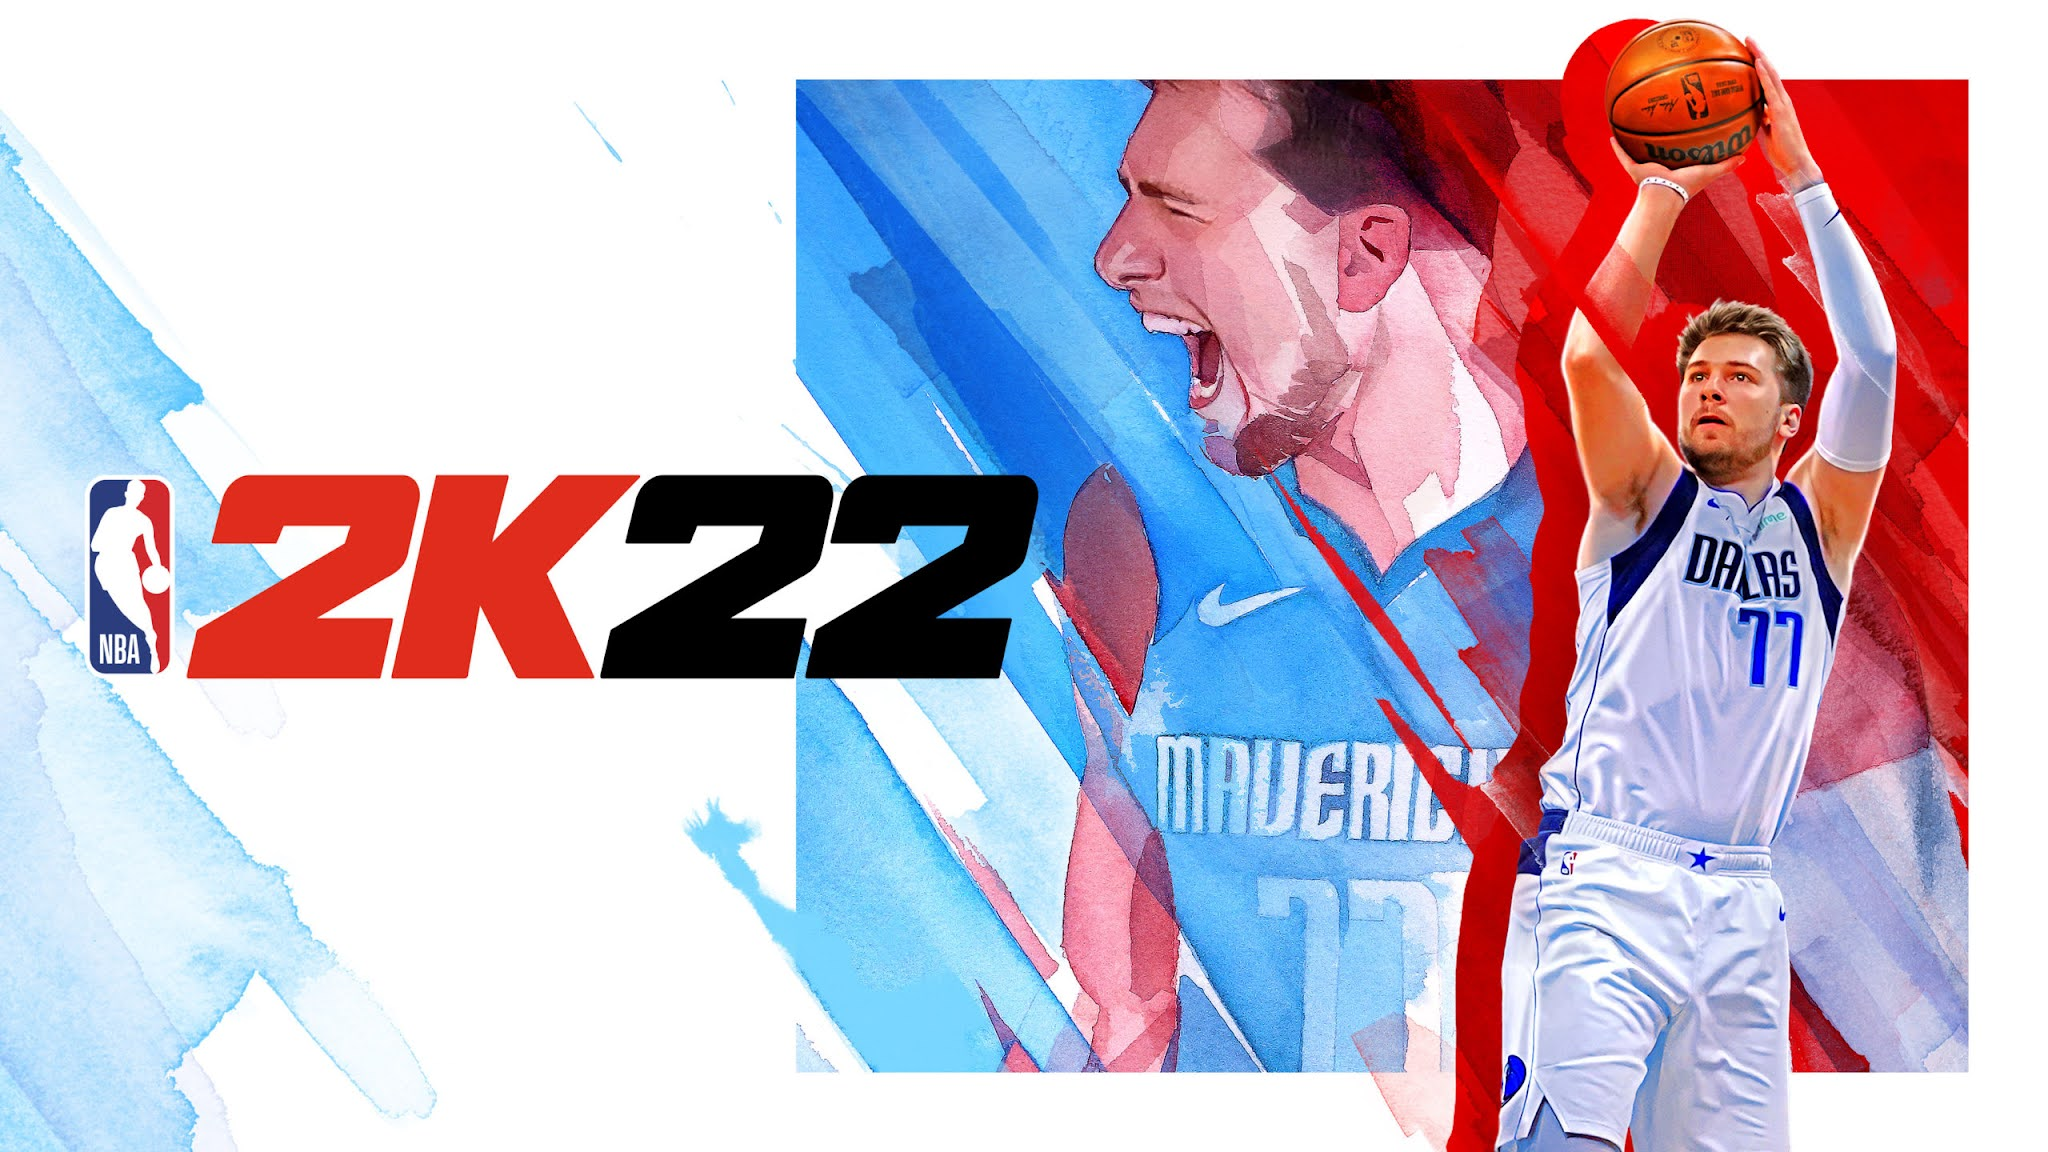 NBA 2K22, HOW TO START WELL, TIPS AND ADVICE